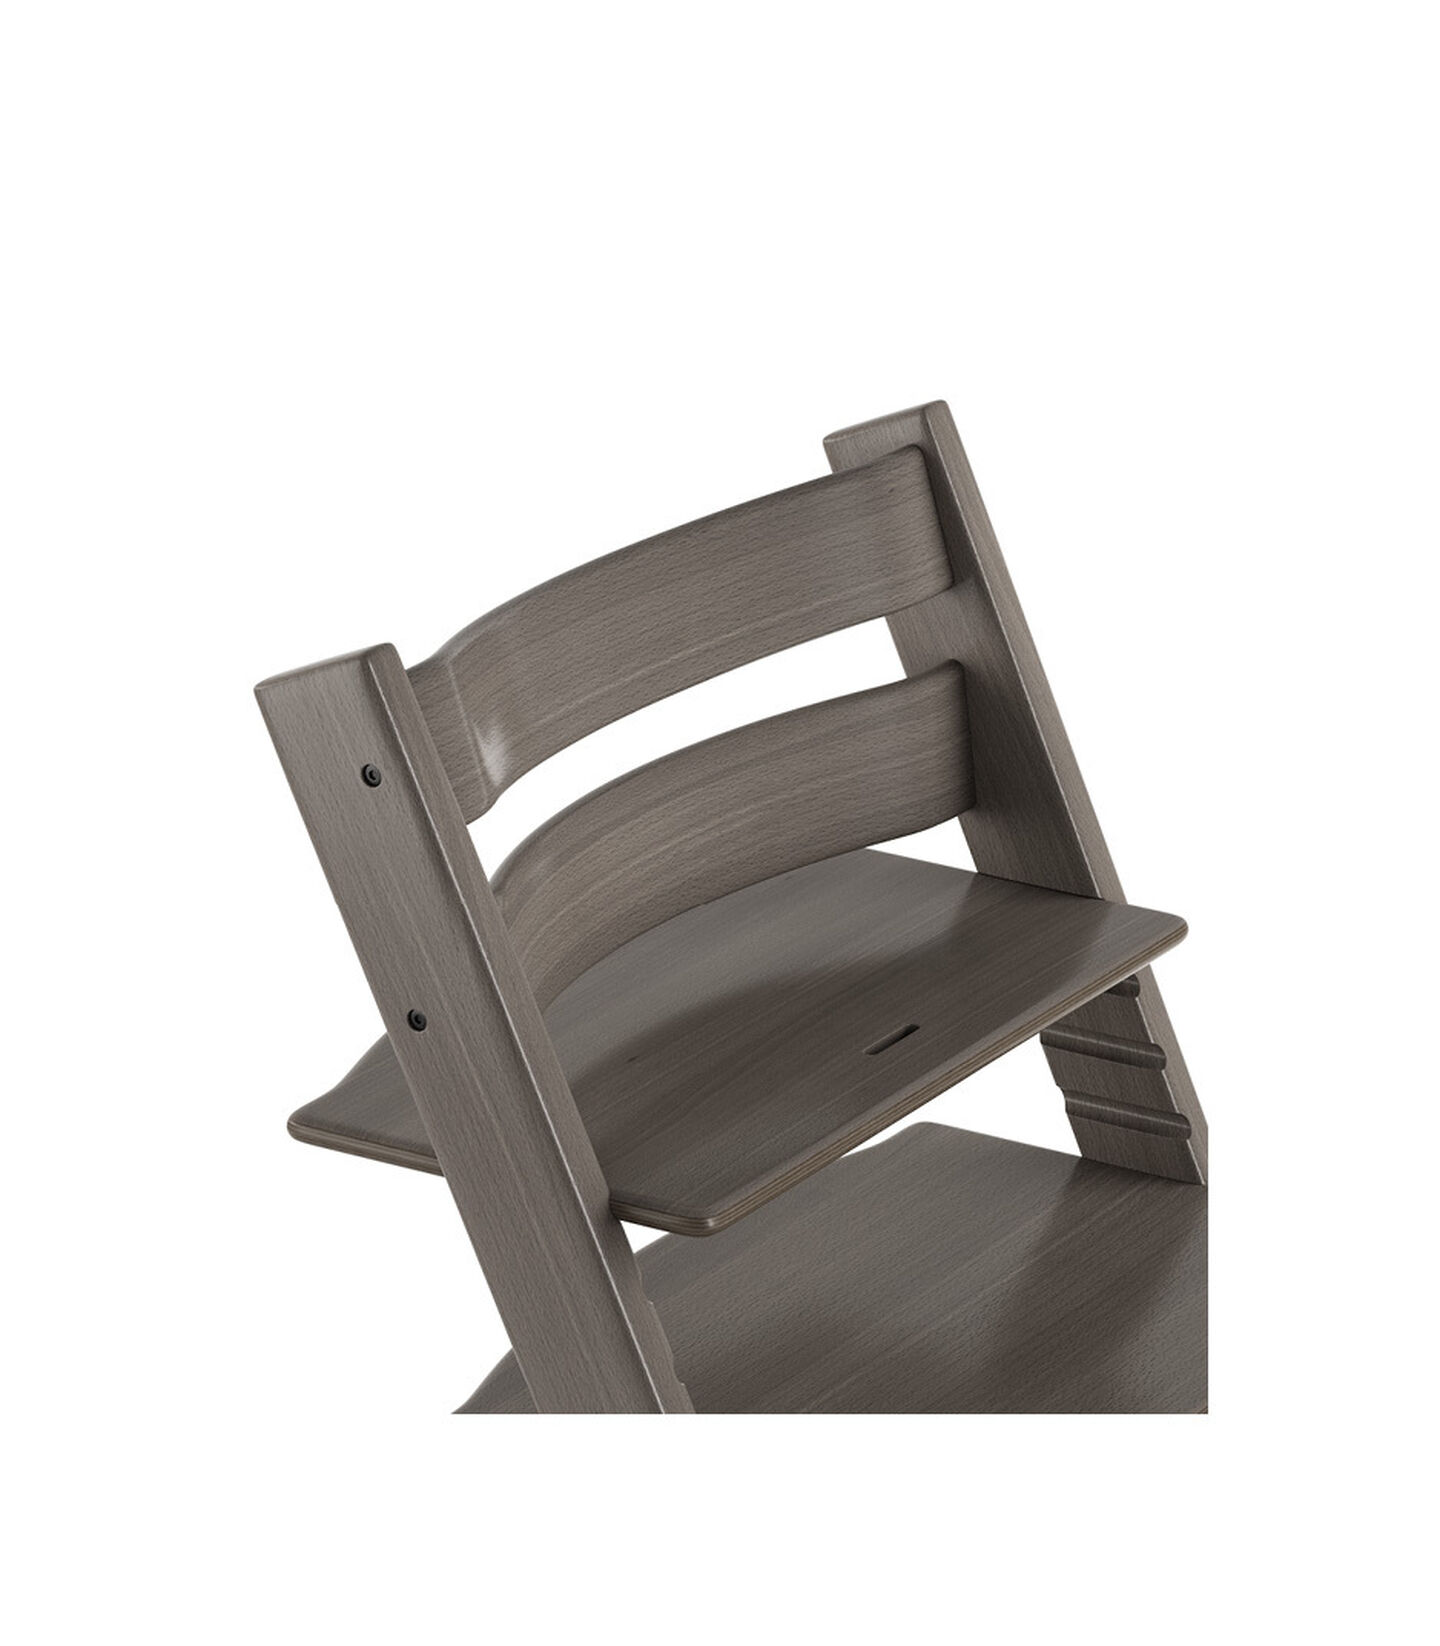 Tripp Trapp® Chair close up 3D rendering Hazy Grey